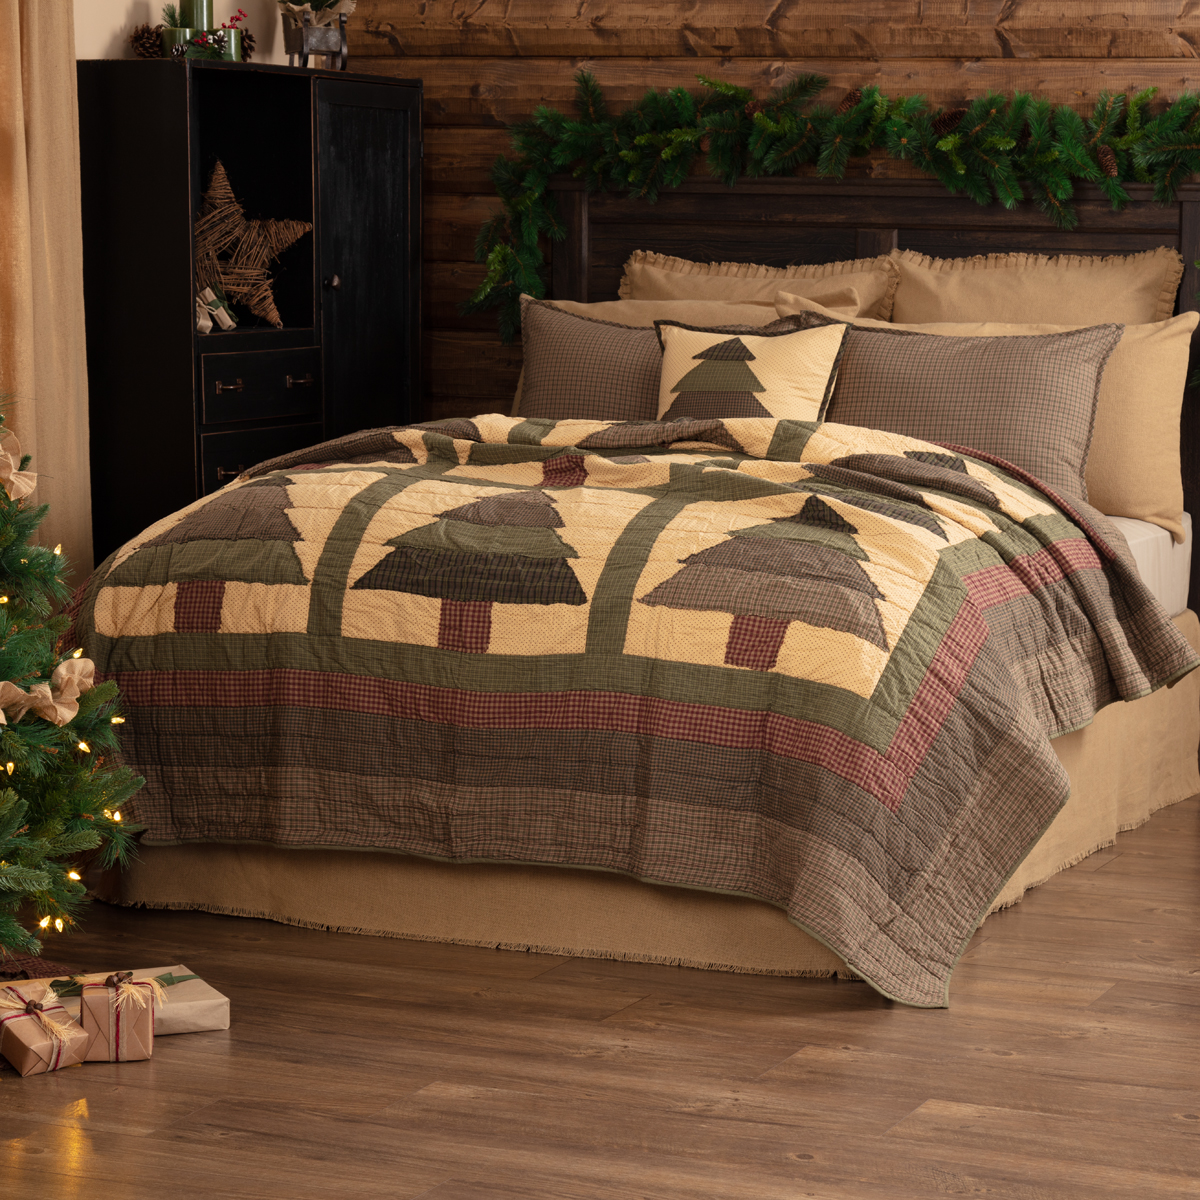 Sequoia King Quilt 105Wx95L